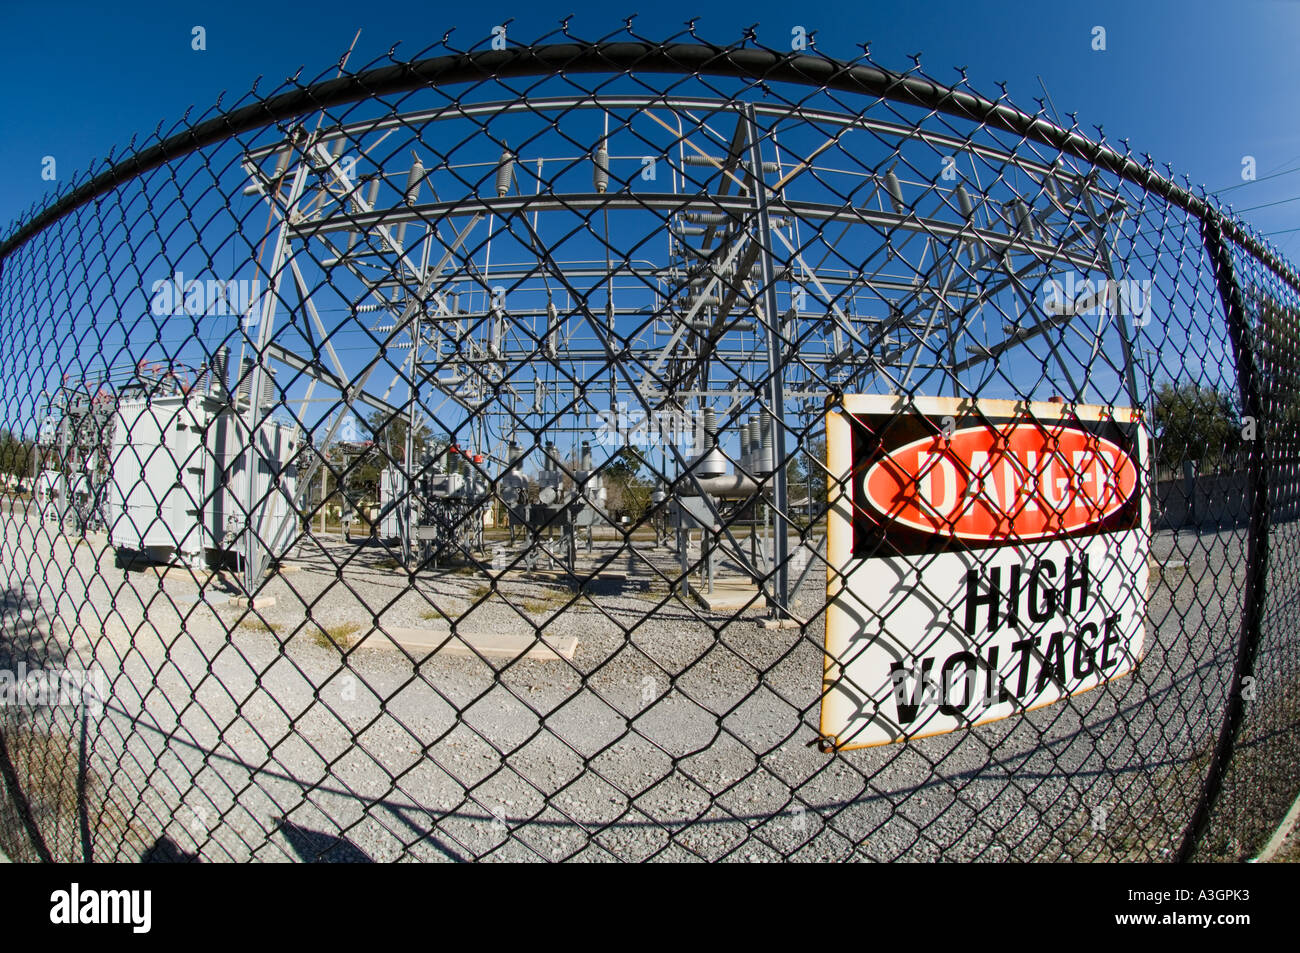 High Voltage Fence Stock Photos Amp High Voltage Fence Stock